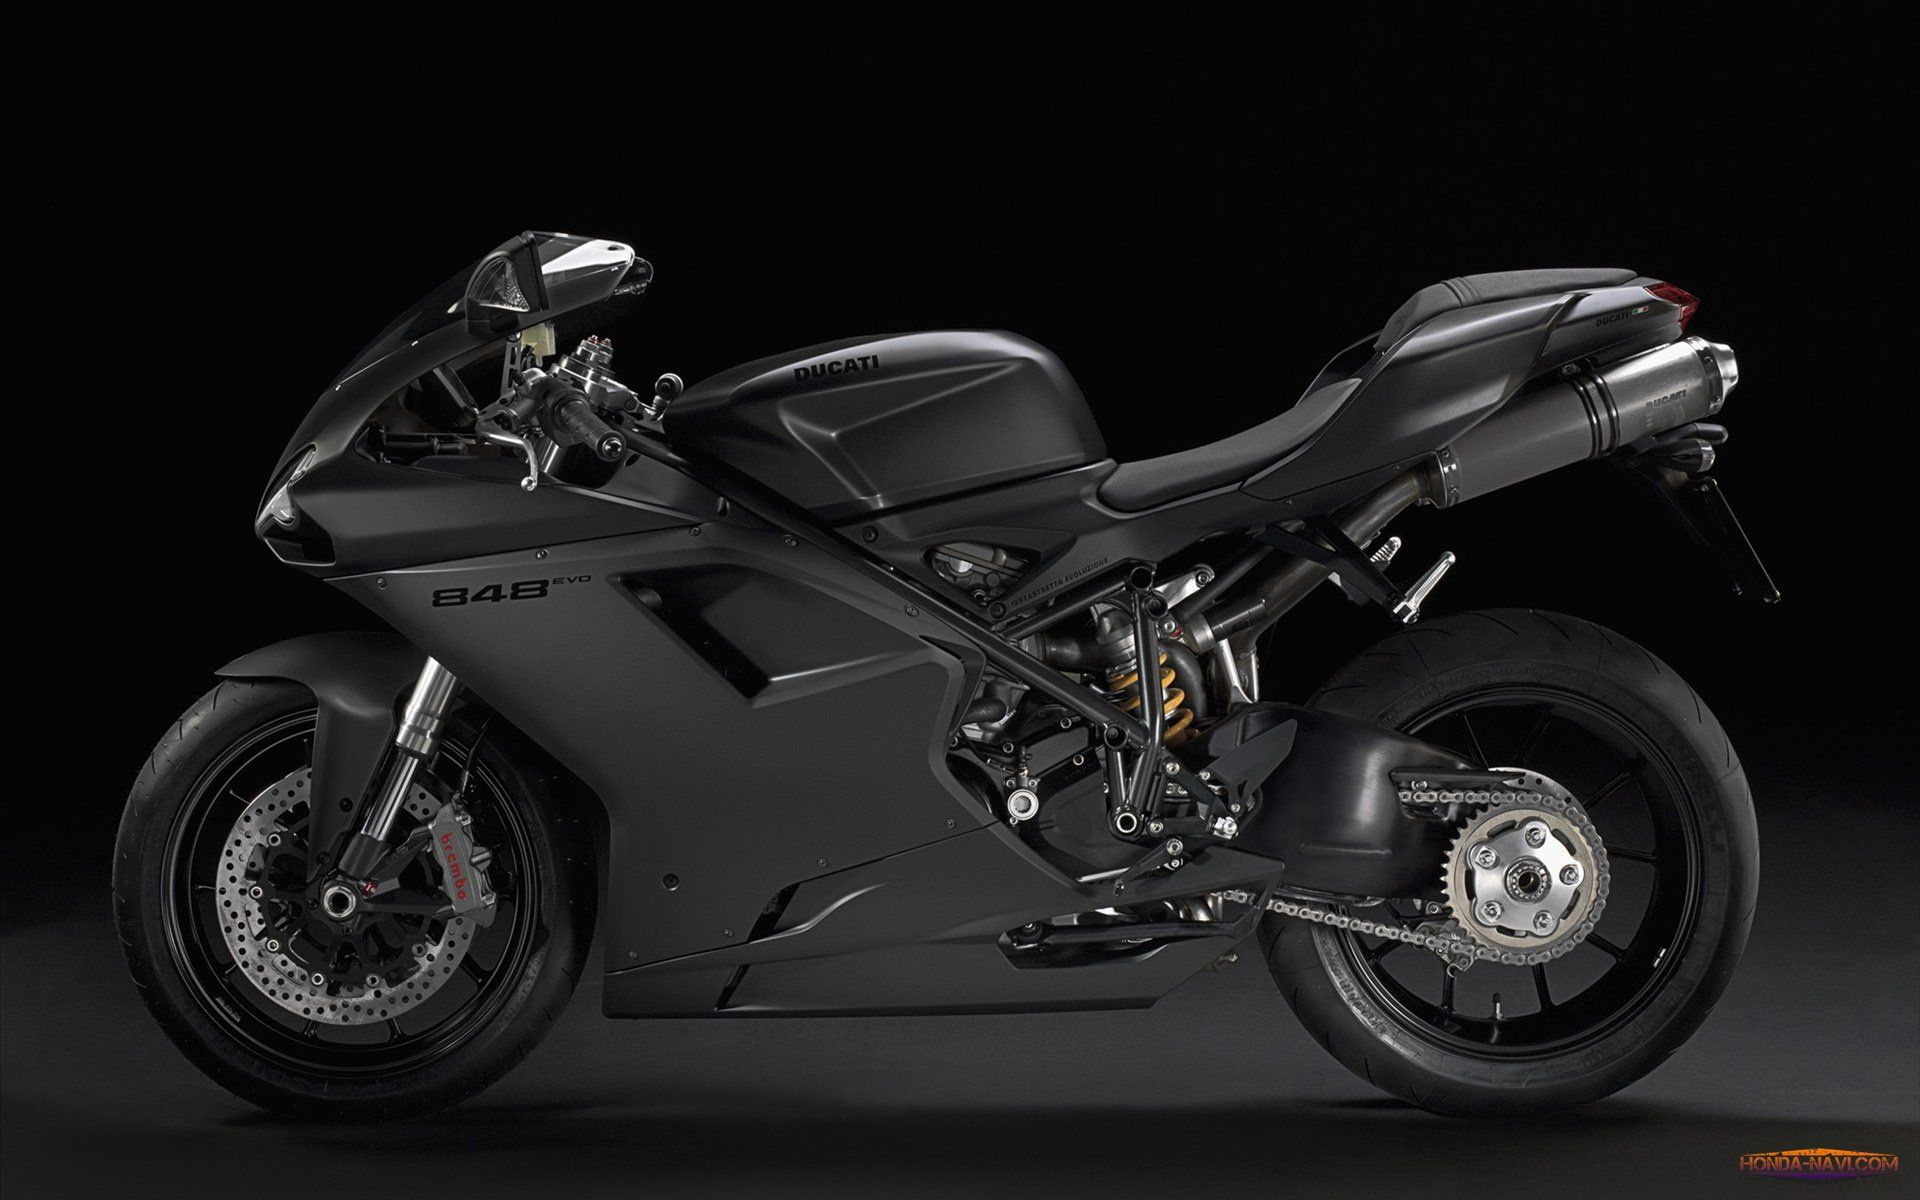 Ducati Streetfighter Widescreen Exotic Car Wallpaper Wallpapers